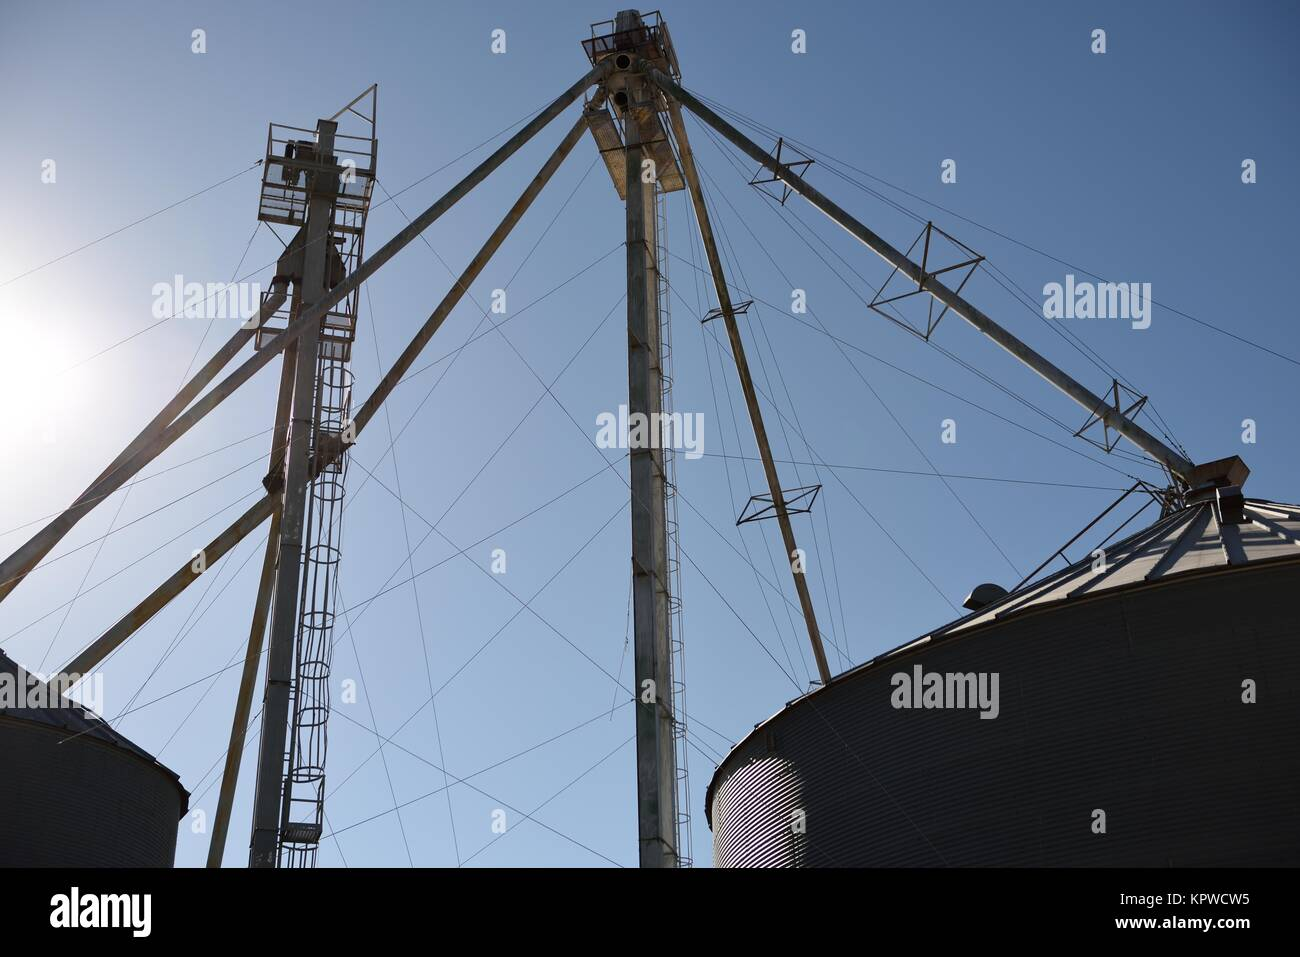 Cable Ladders Stock Photos & Cable Ladders Stock Images - Alamy